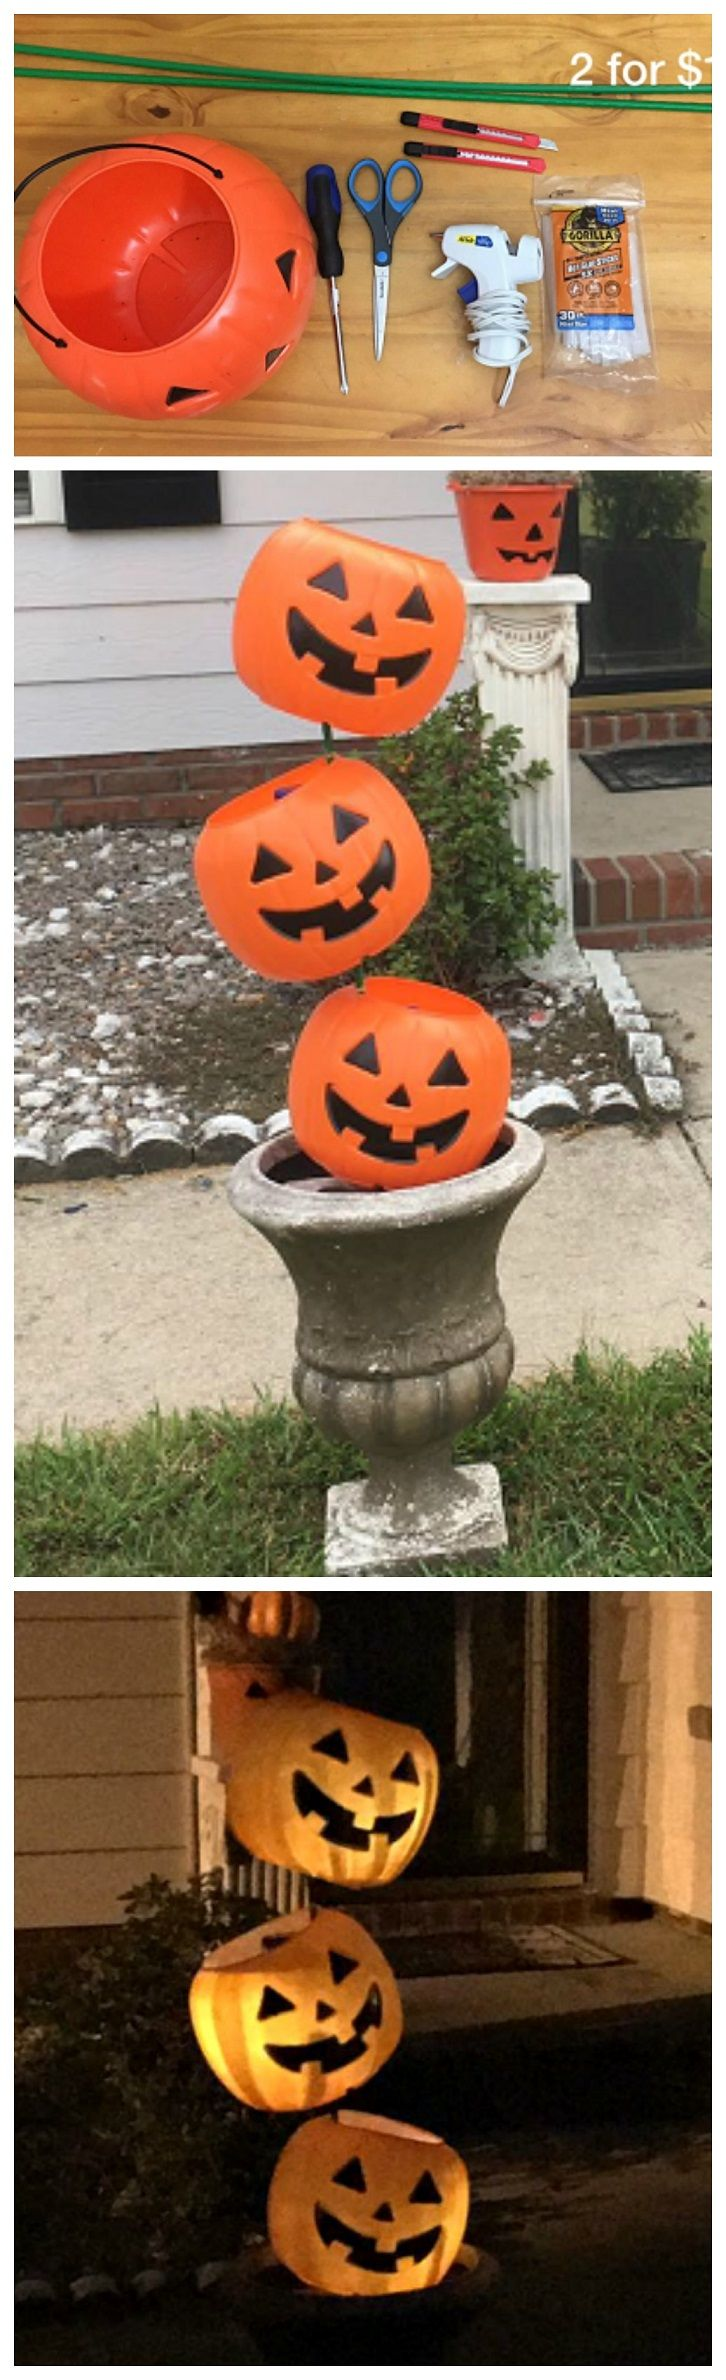 Wooden halloween yard decorations - Make A Plastic Pumpkin Pail Tipsy Decoration For Halloween Such A Cheap And Easy Craft